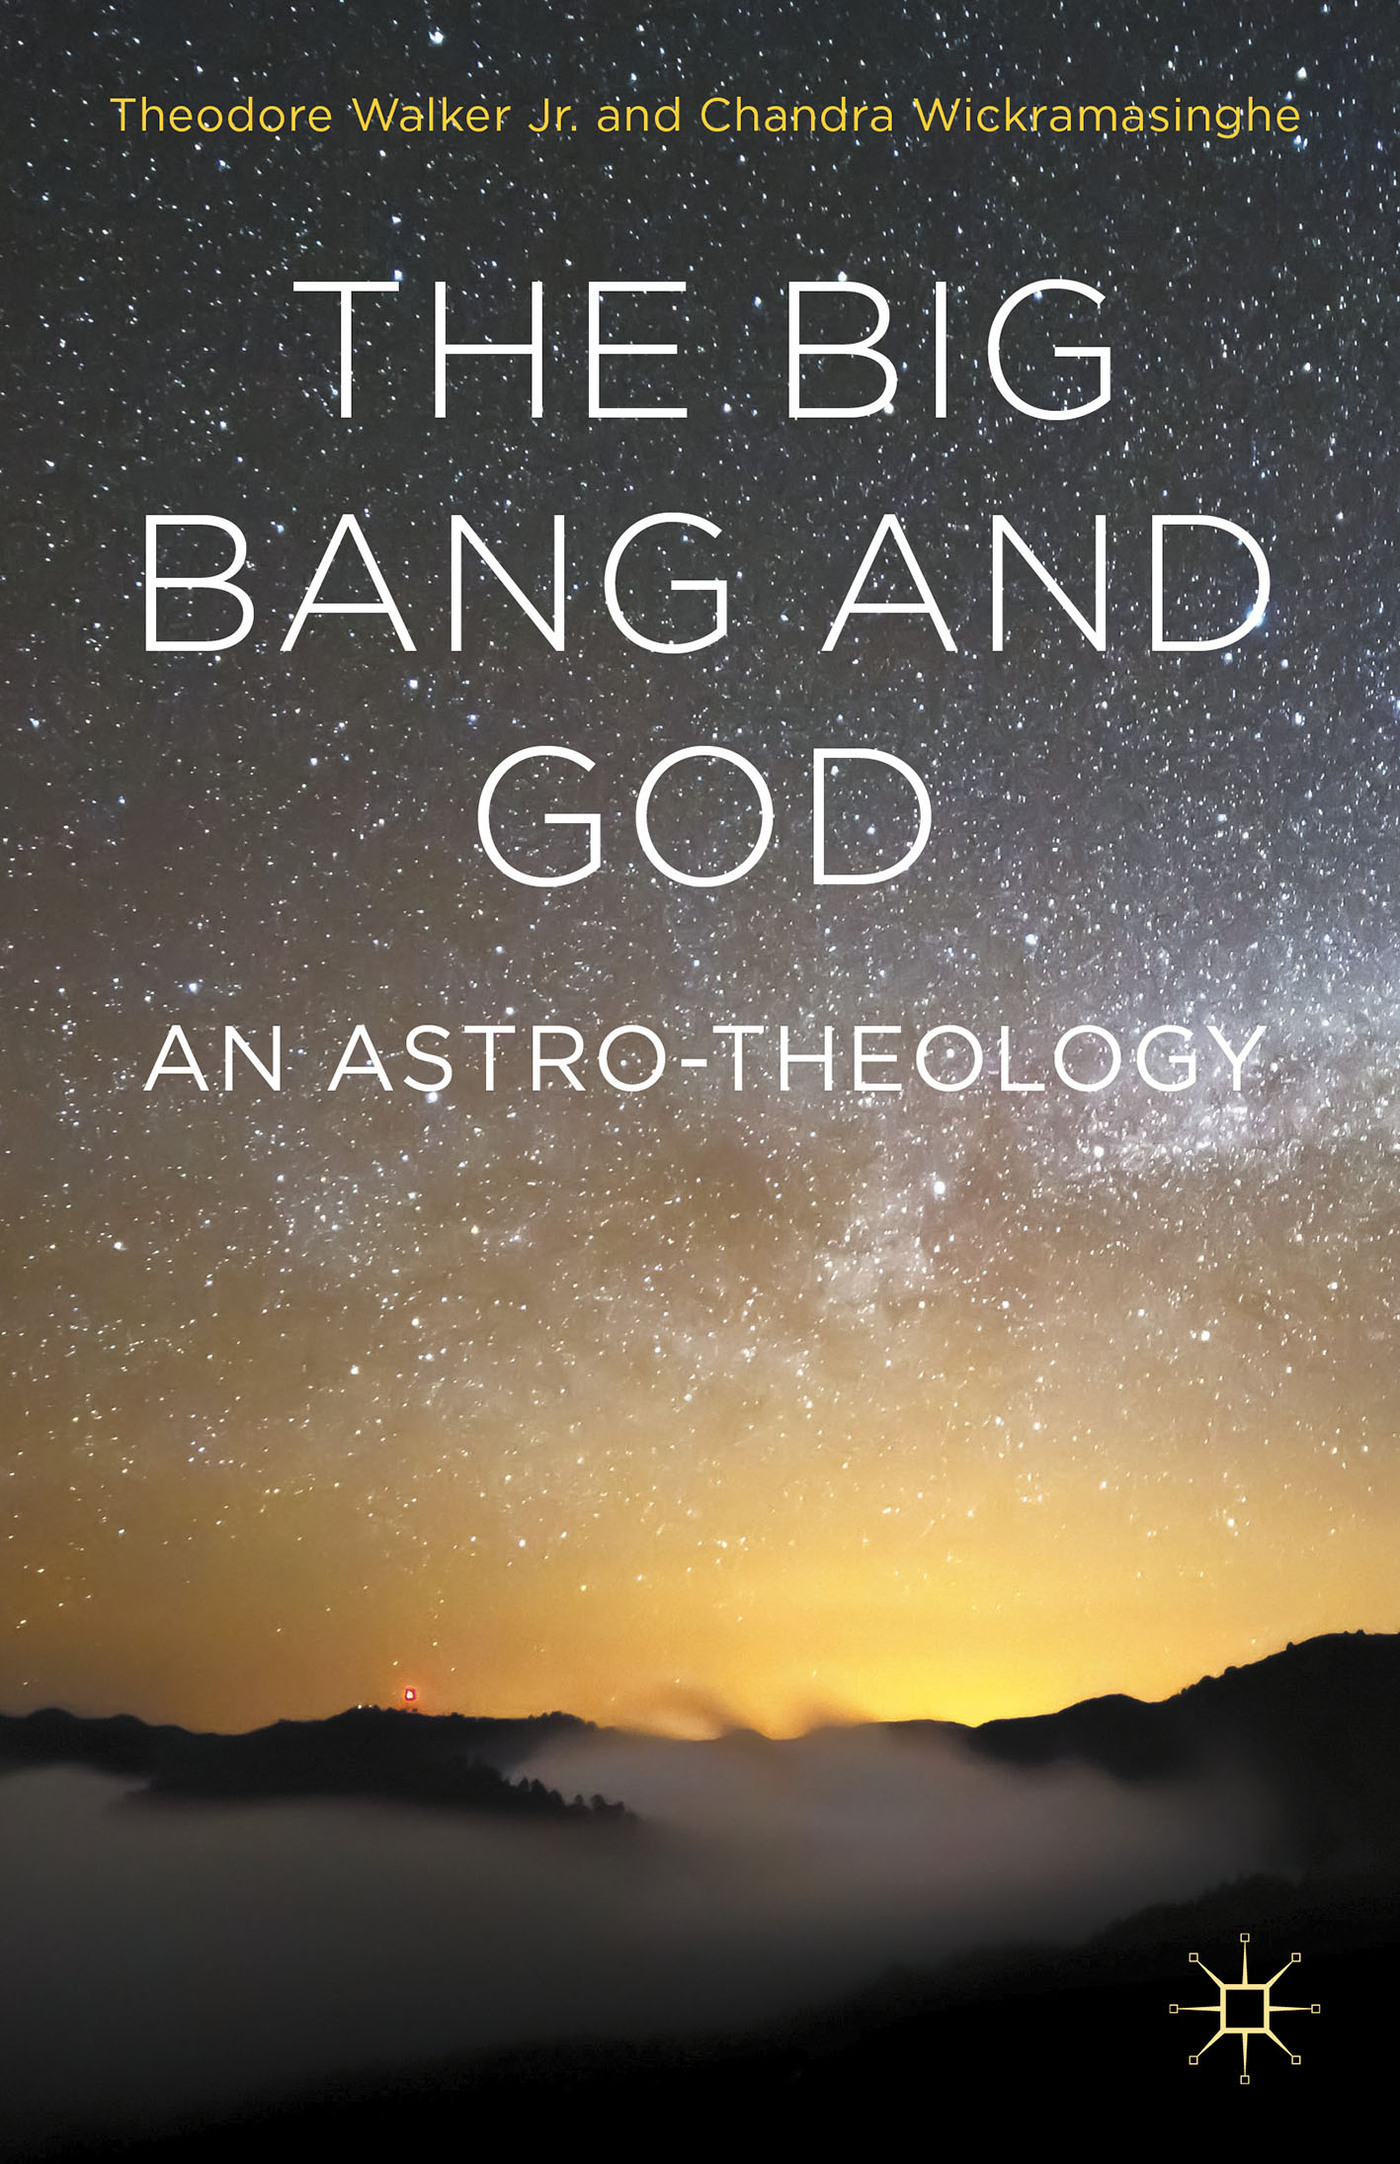 The Big Bang and God: An Astro-Theology Theodore Walker